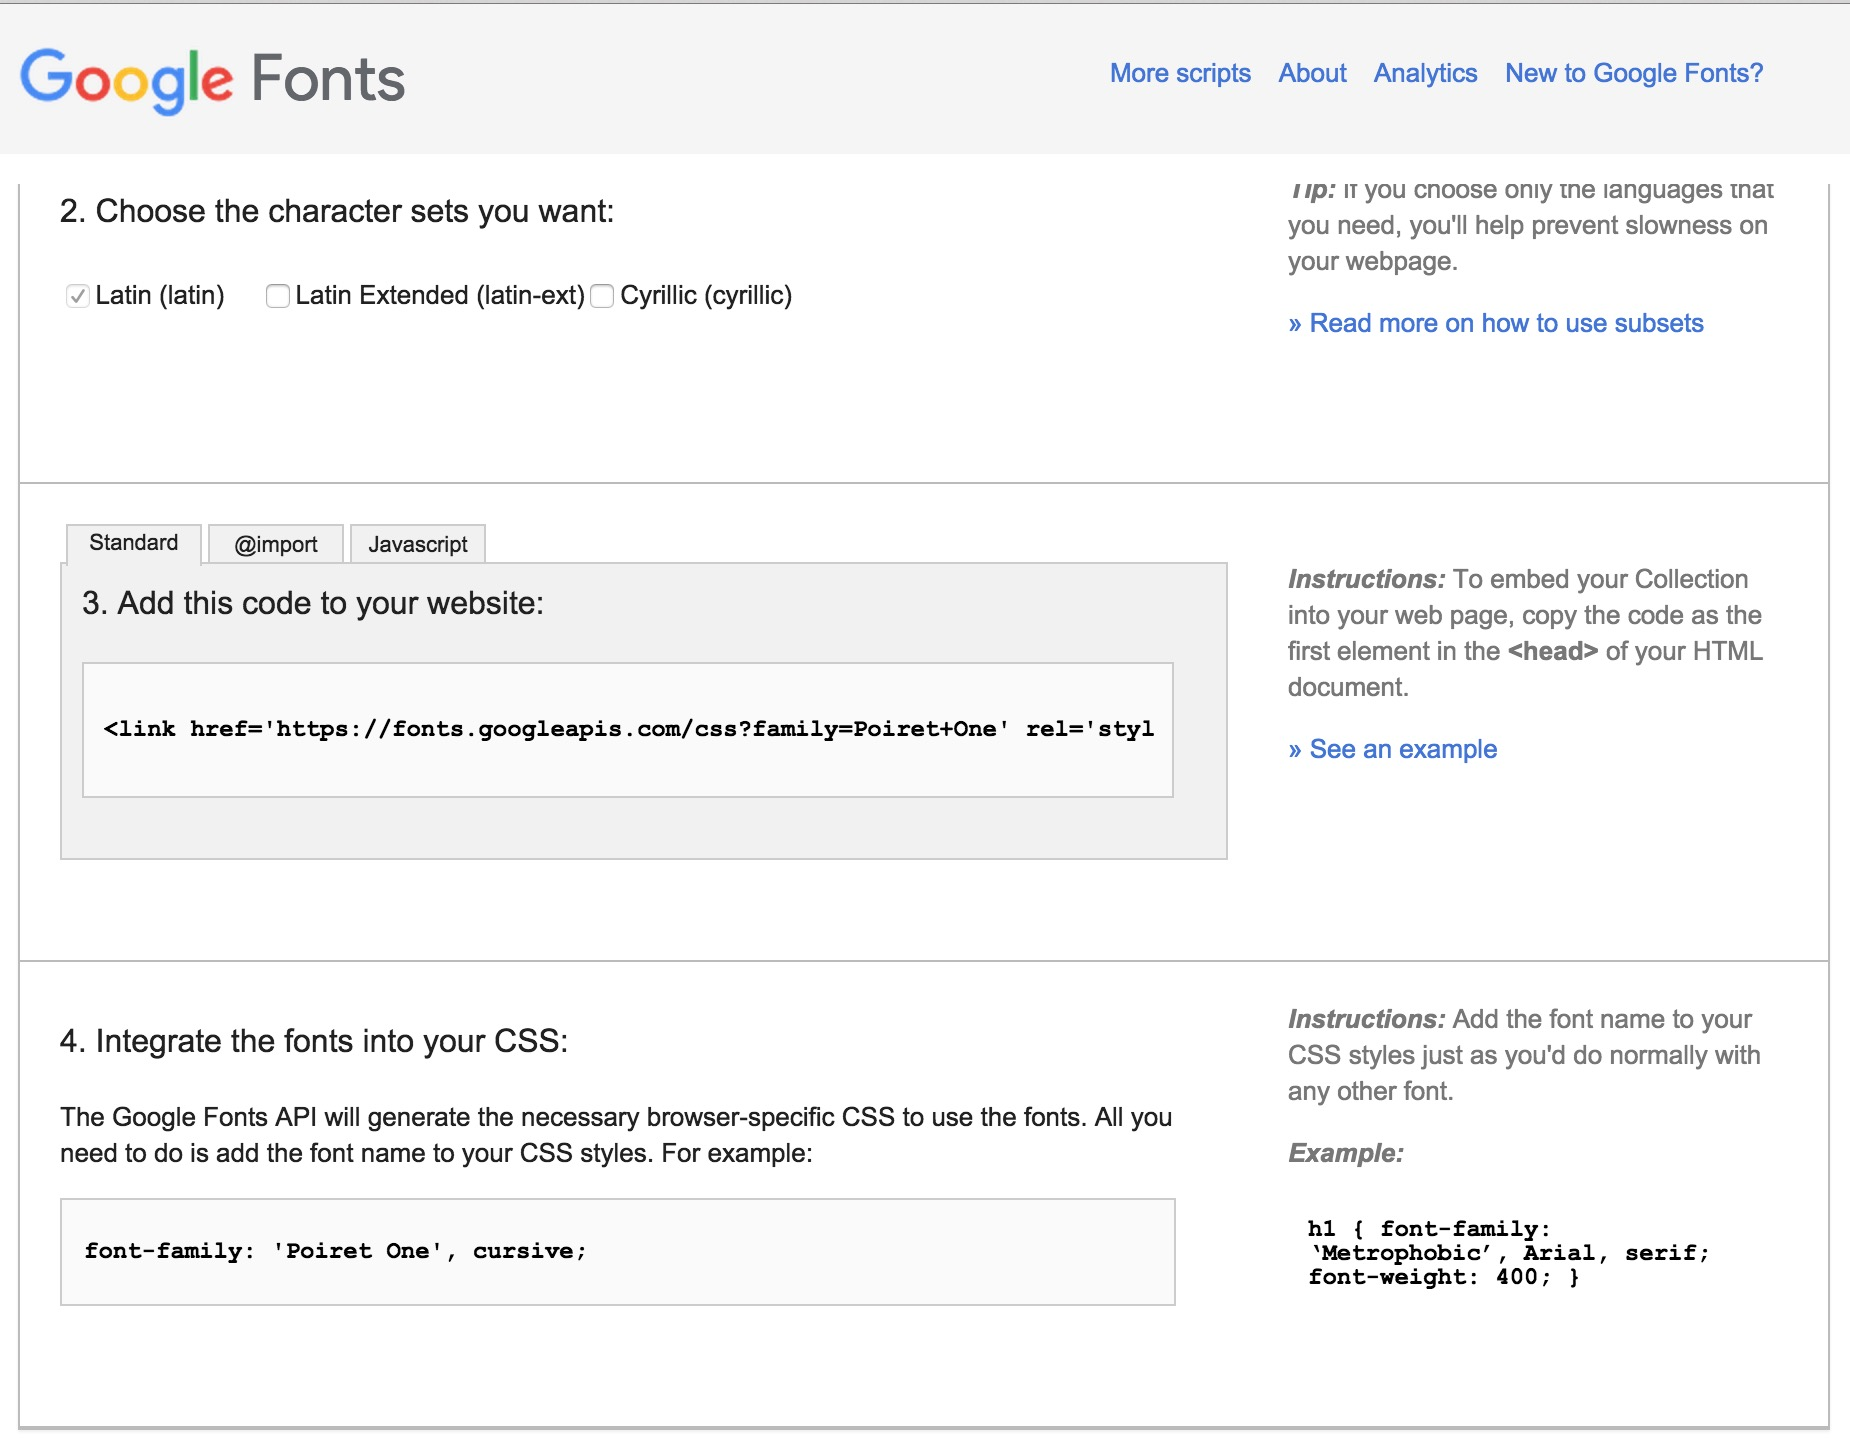 How do I get my own font on ServiceNow Portal? - Now